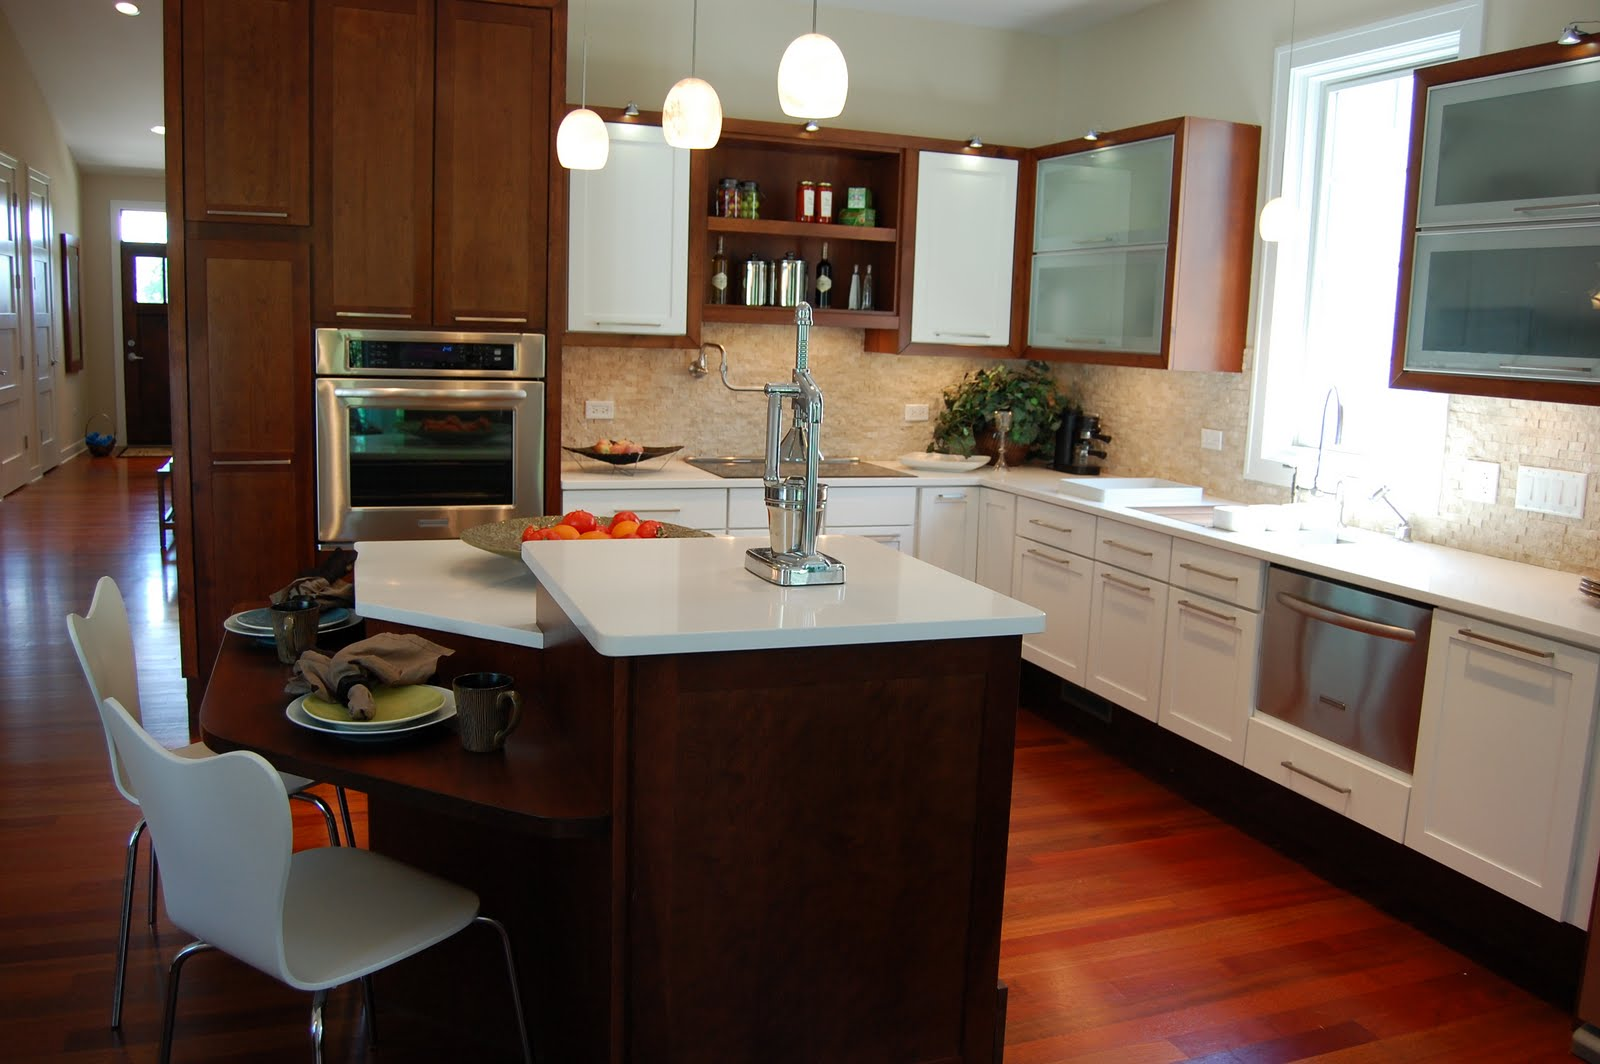 Universal Design Kitchen Cabinets Lifehouse Highlights Advantages Of Universal Design